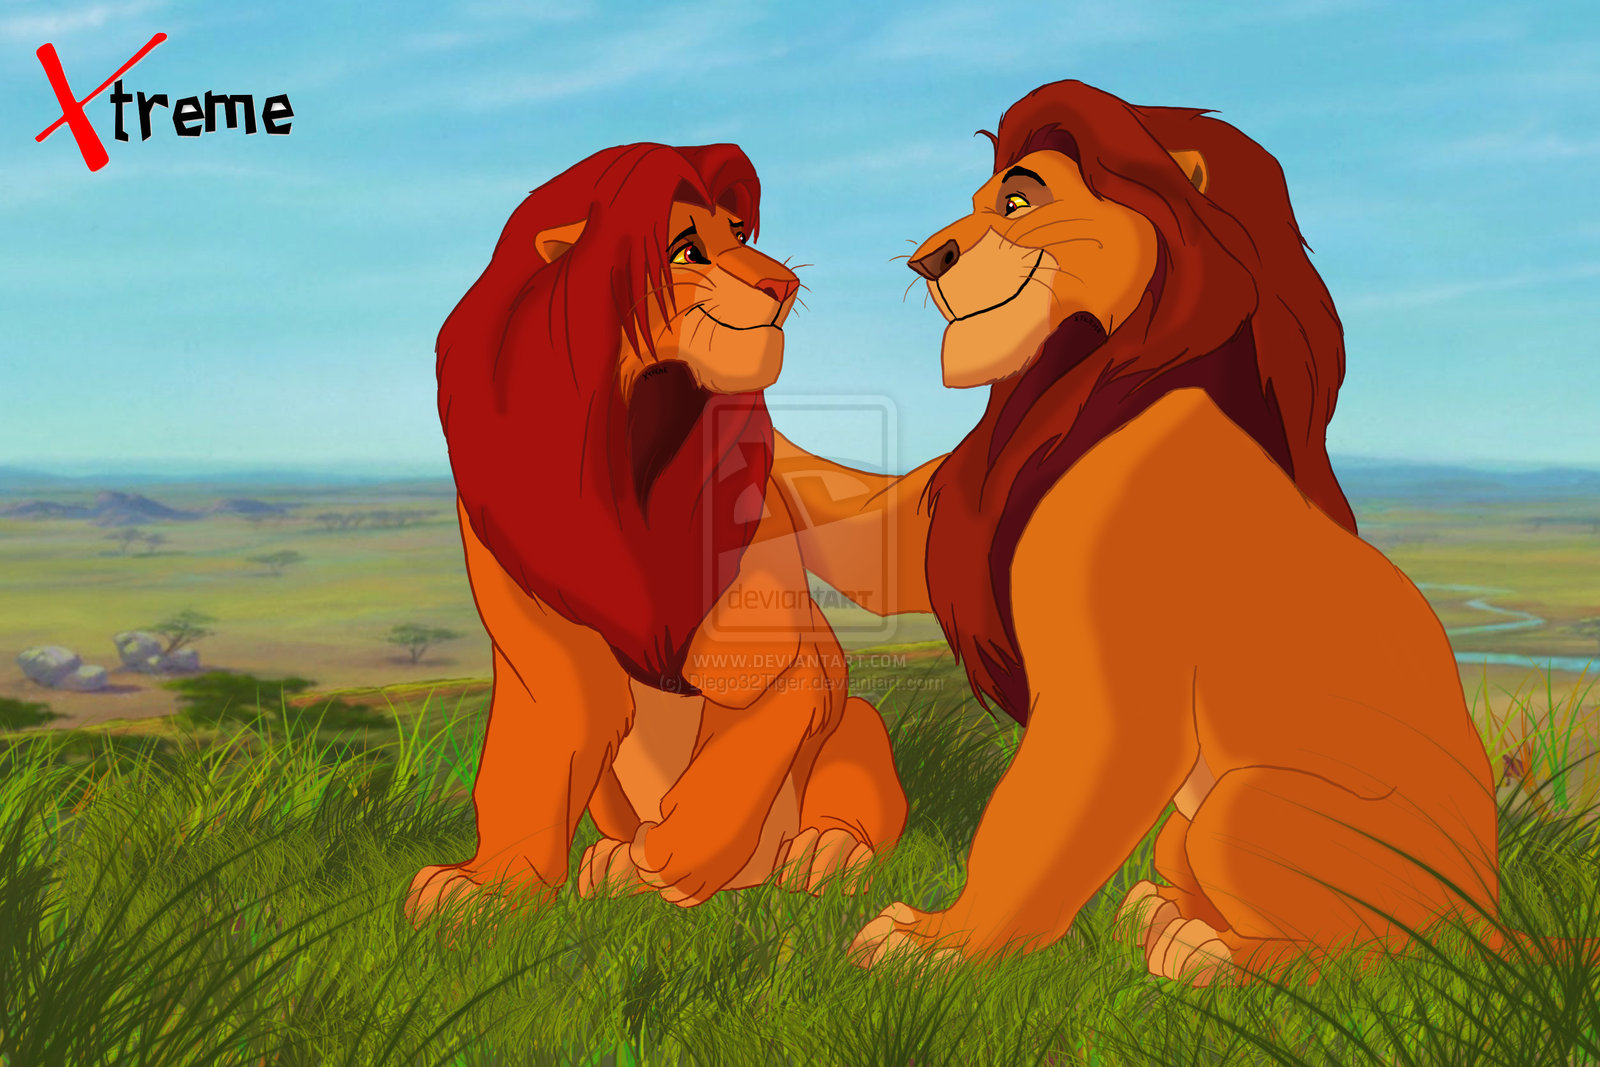 Uncategorized Lion King Mufasa image the lion king mufasa and simba by diego32tiger d5ty527 jpg jpg